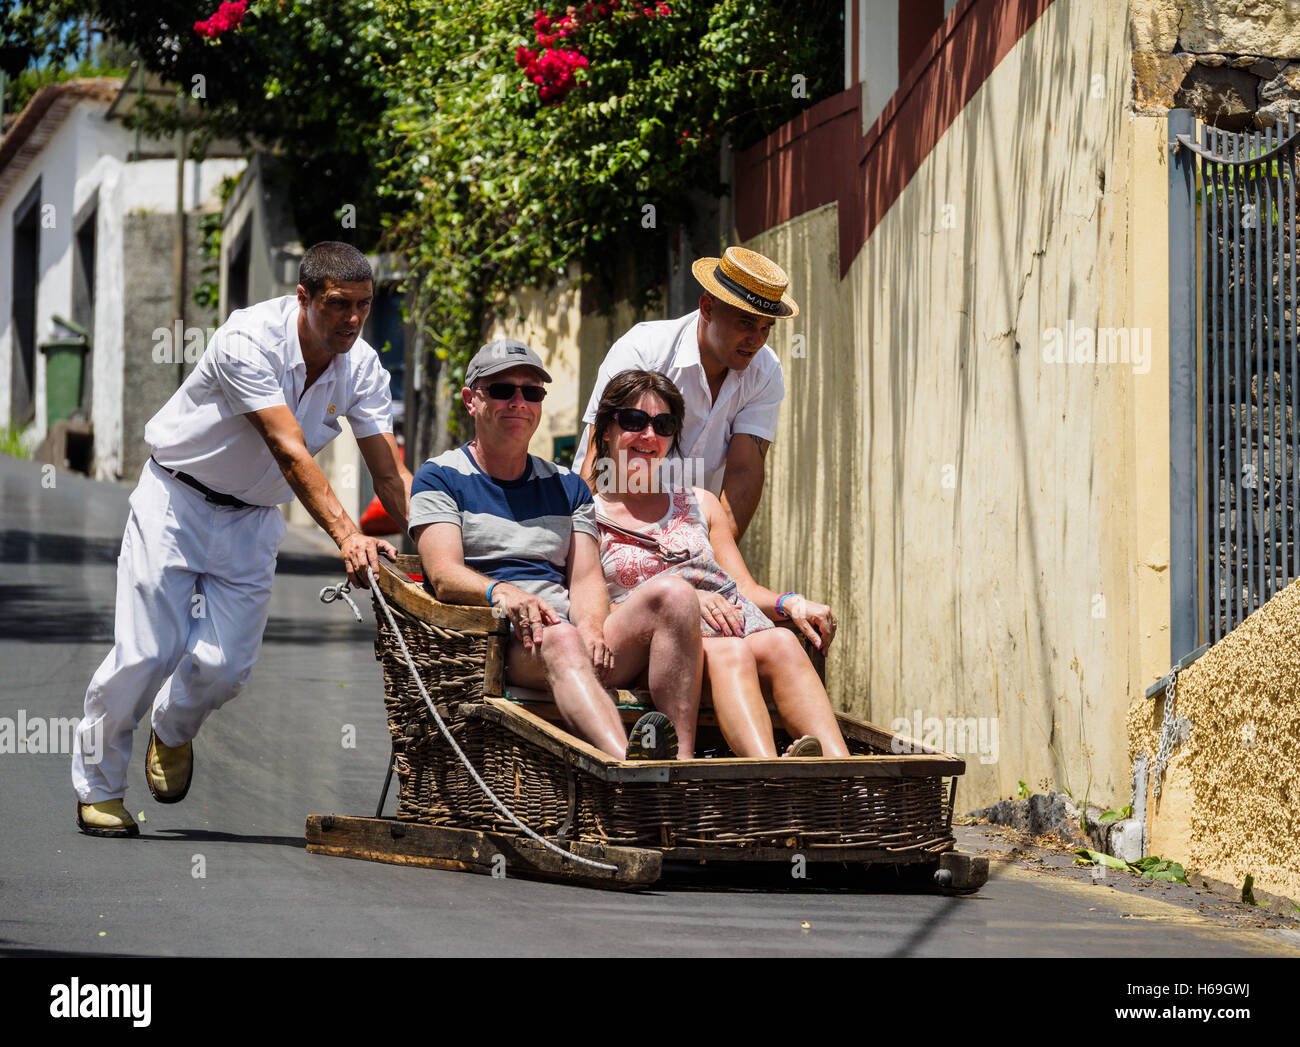 Toboggan drivers dressed in traditional white clothing carry tourists in a wooden toboggan from Monte down the hill - Stock Image